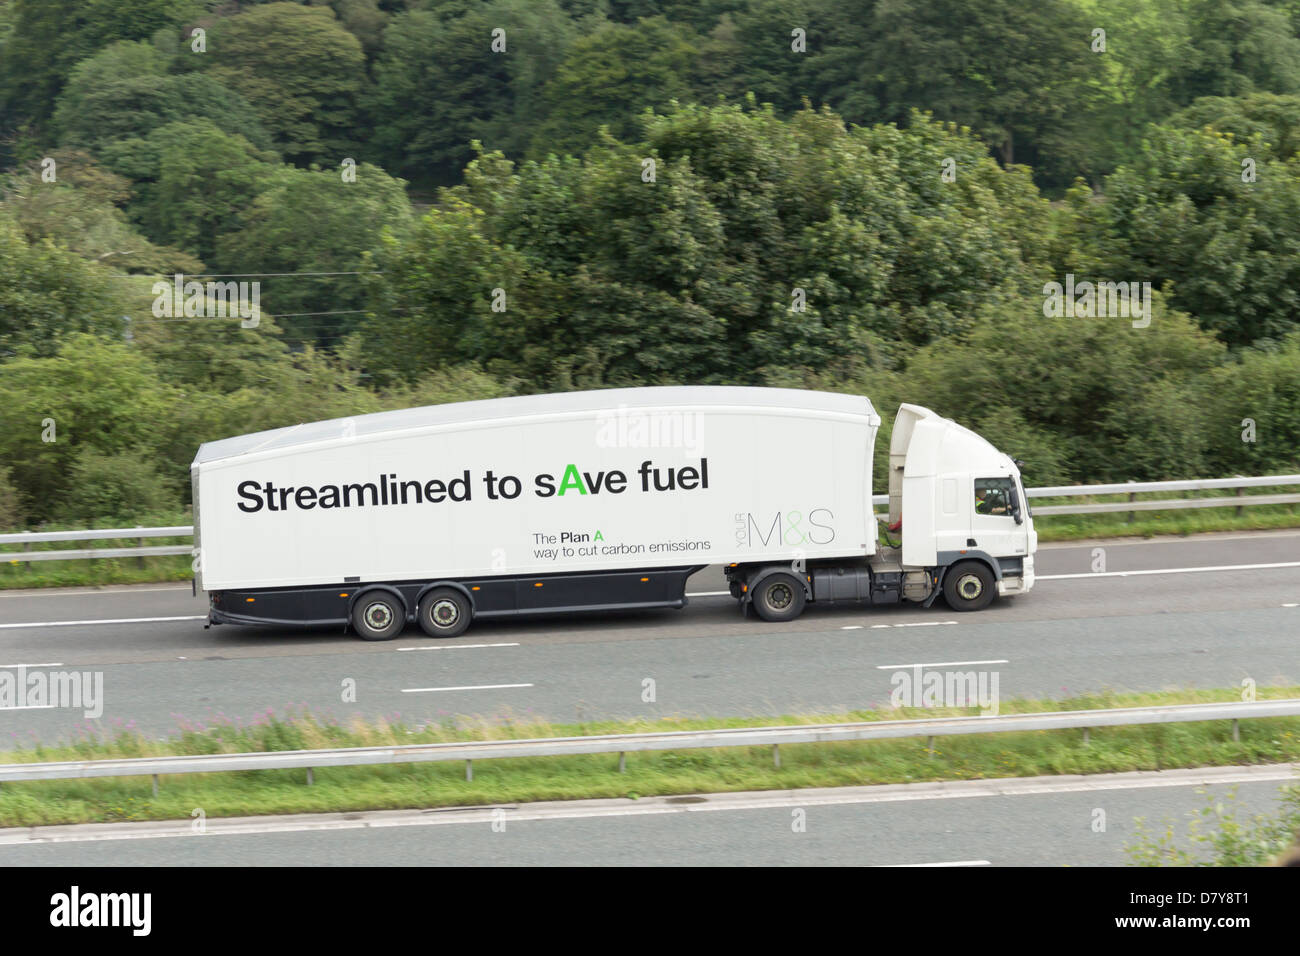 An articulated lorry (HGV) operated by the retailer Marks and Spencer. The vehicle is streamlined to cut carbon - Stock Image